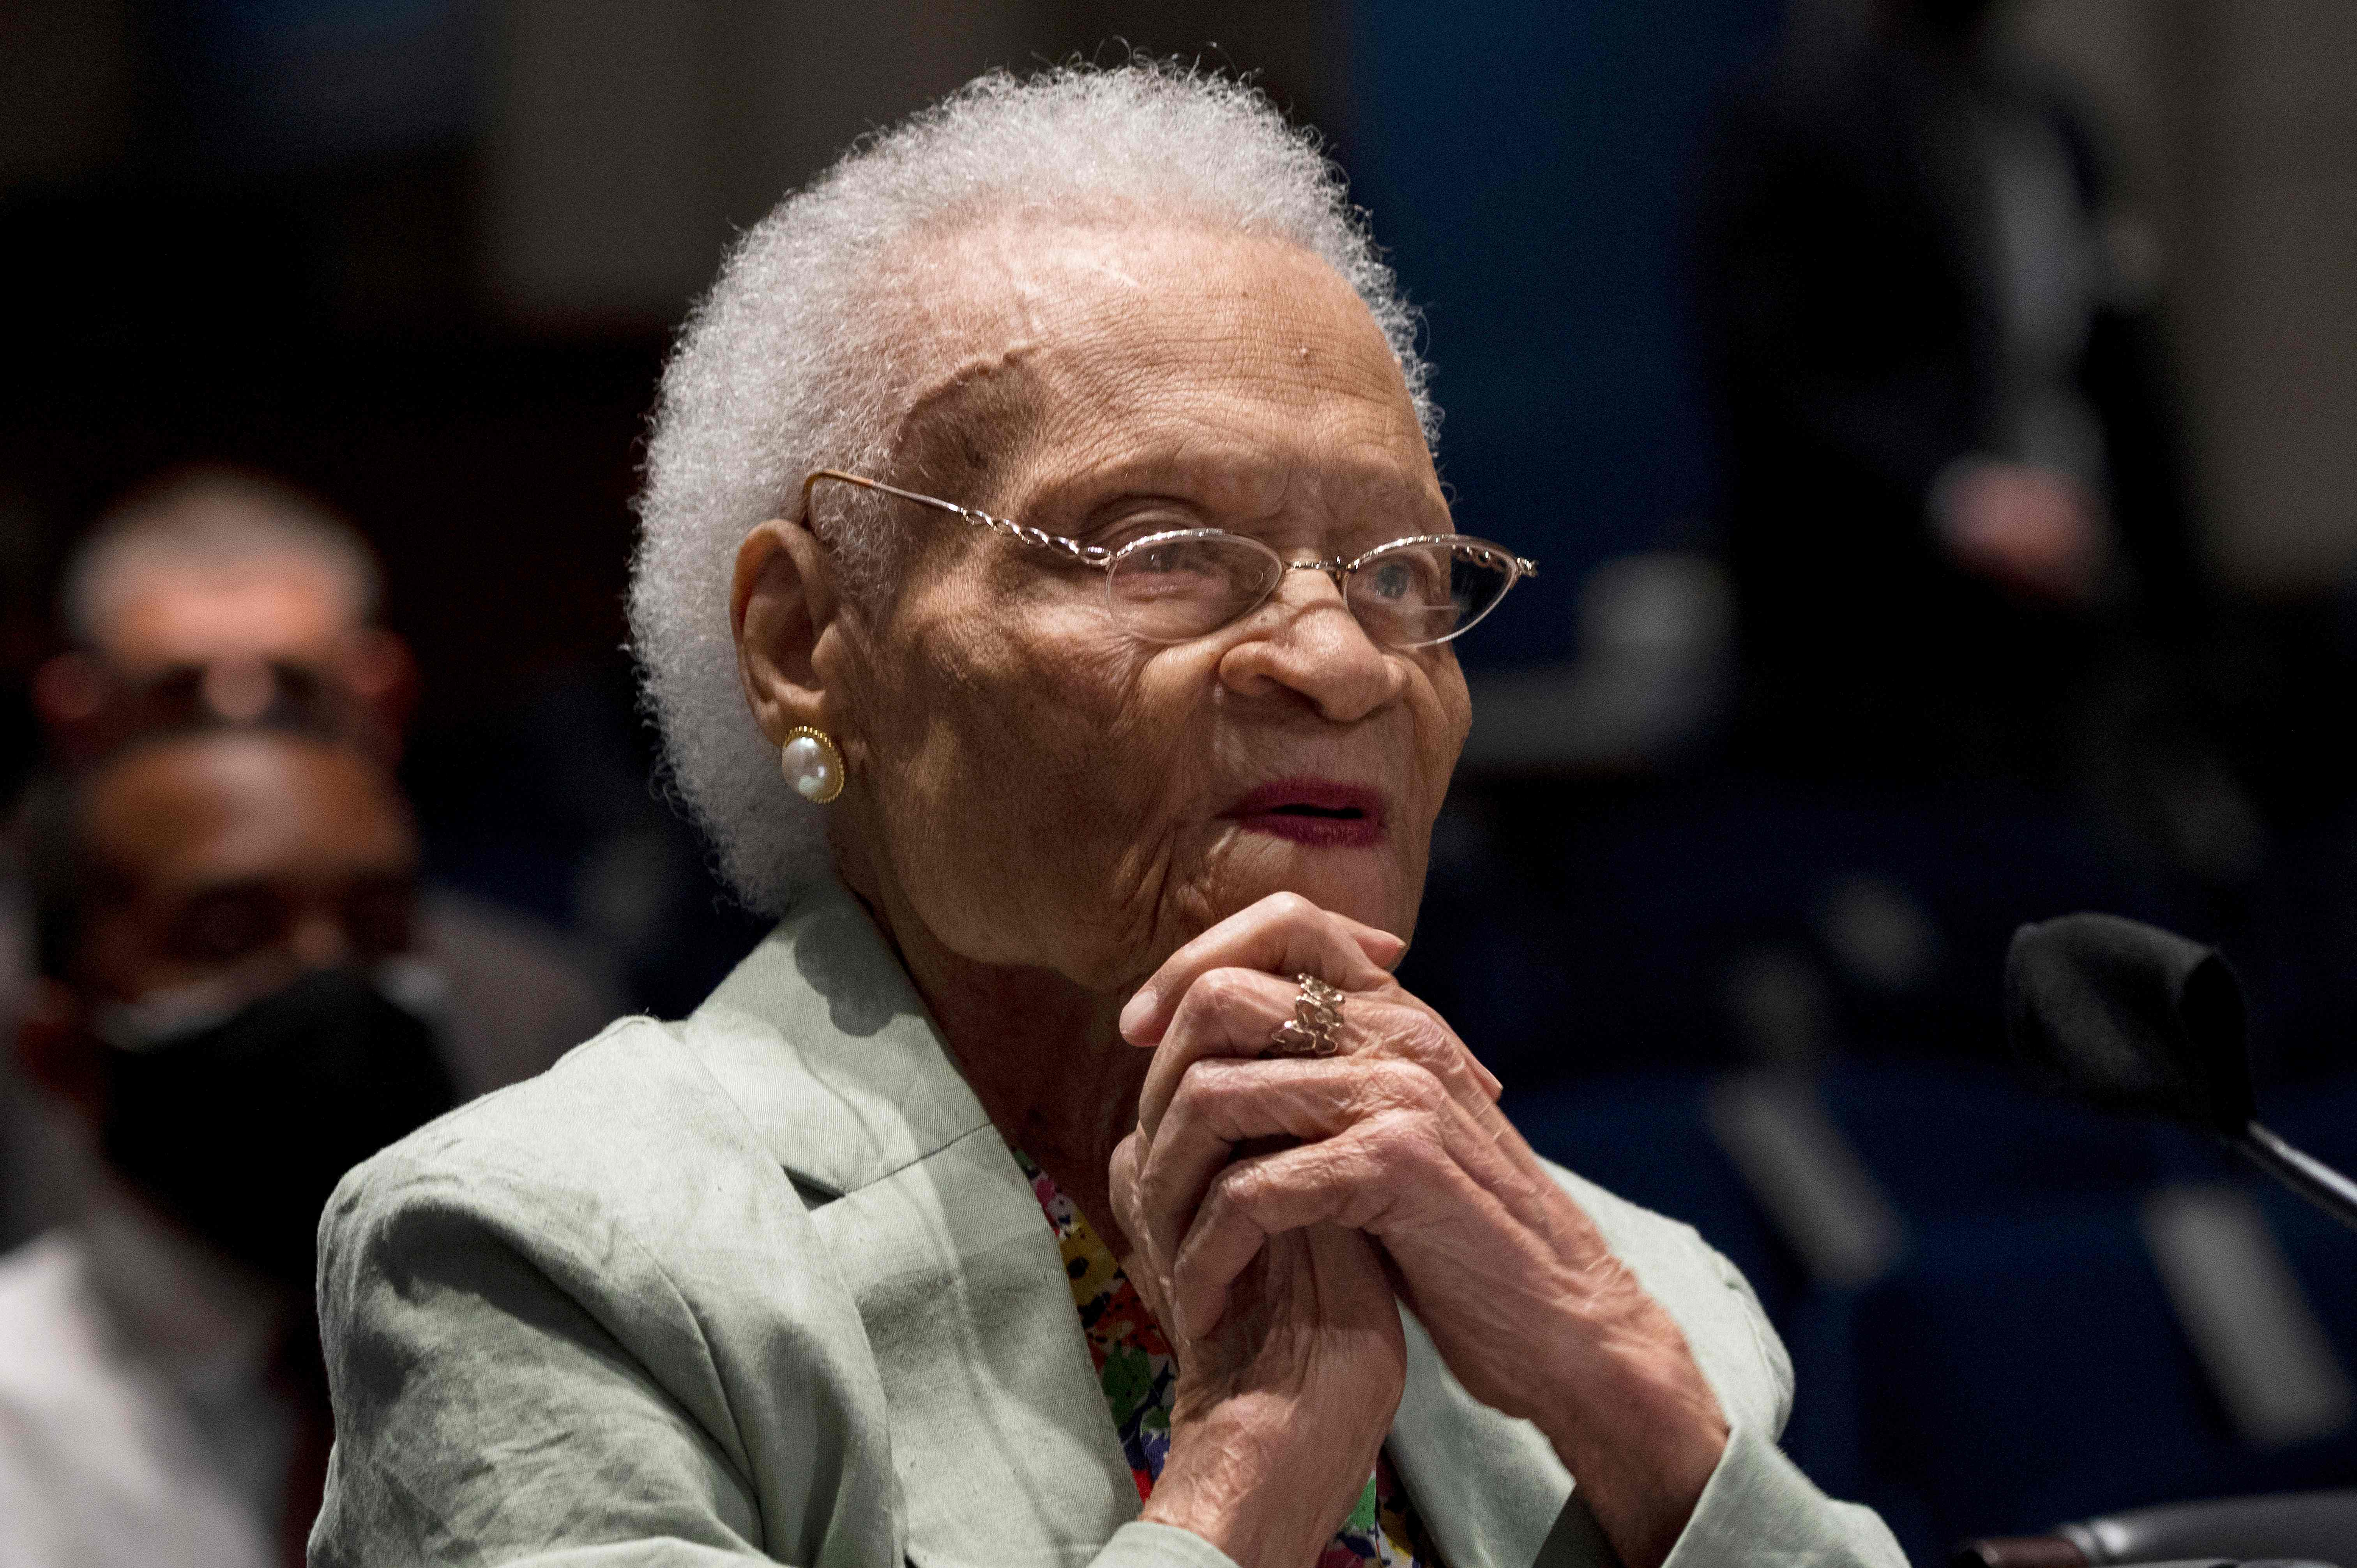 """Viola Fletcher, the oldest living survivor of the Tulsa Race Massacre, testifies before the Constitution, Civil Rights and Civil Liberties Subcommittee hearing on """"Continuing Injustice: The Centennial of the Tulsa-Greenwood Race Massacre"""" on Capitol Hill in Washington, DC on May 19, 2021."""